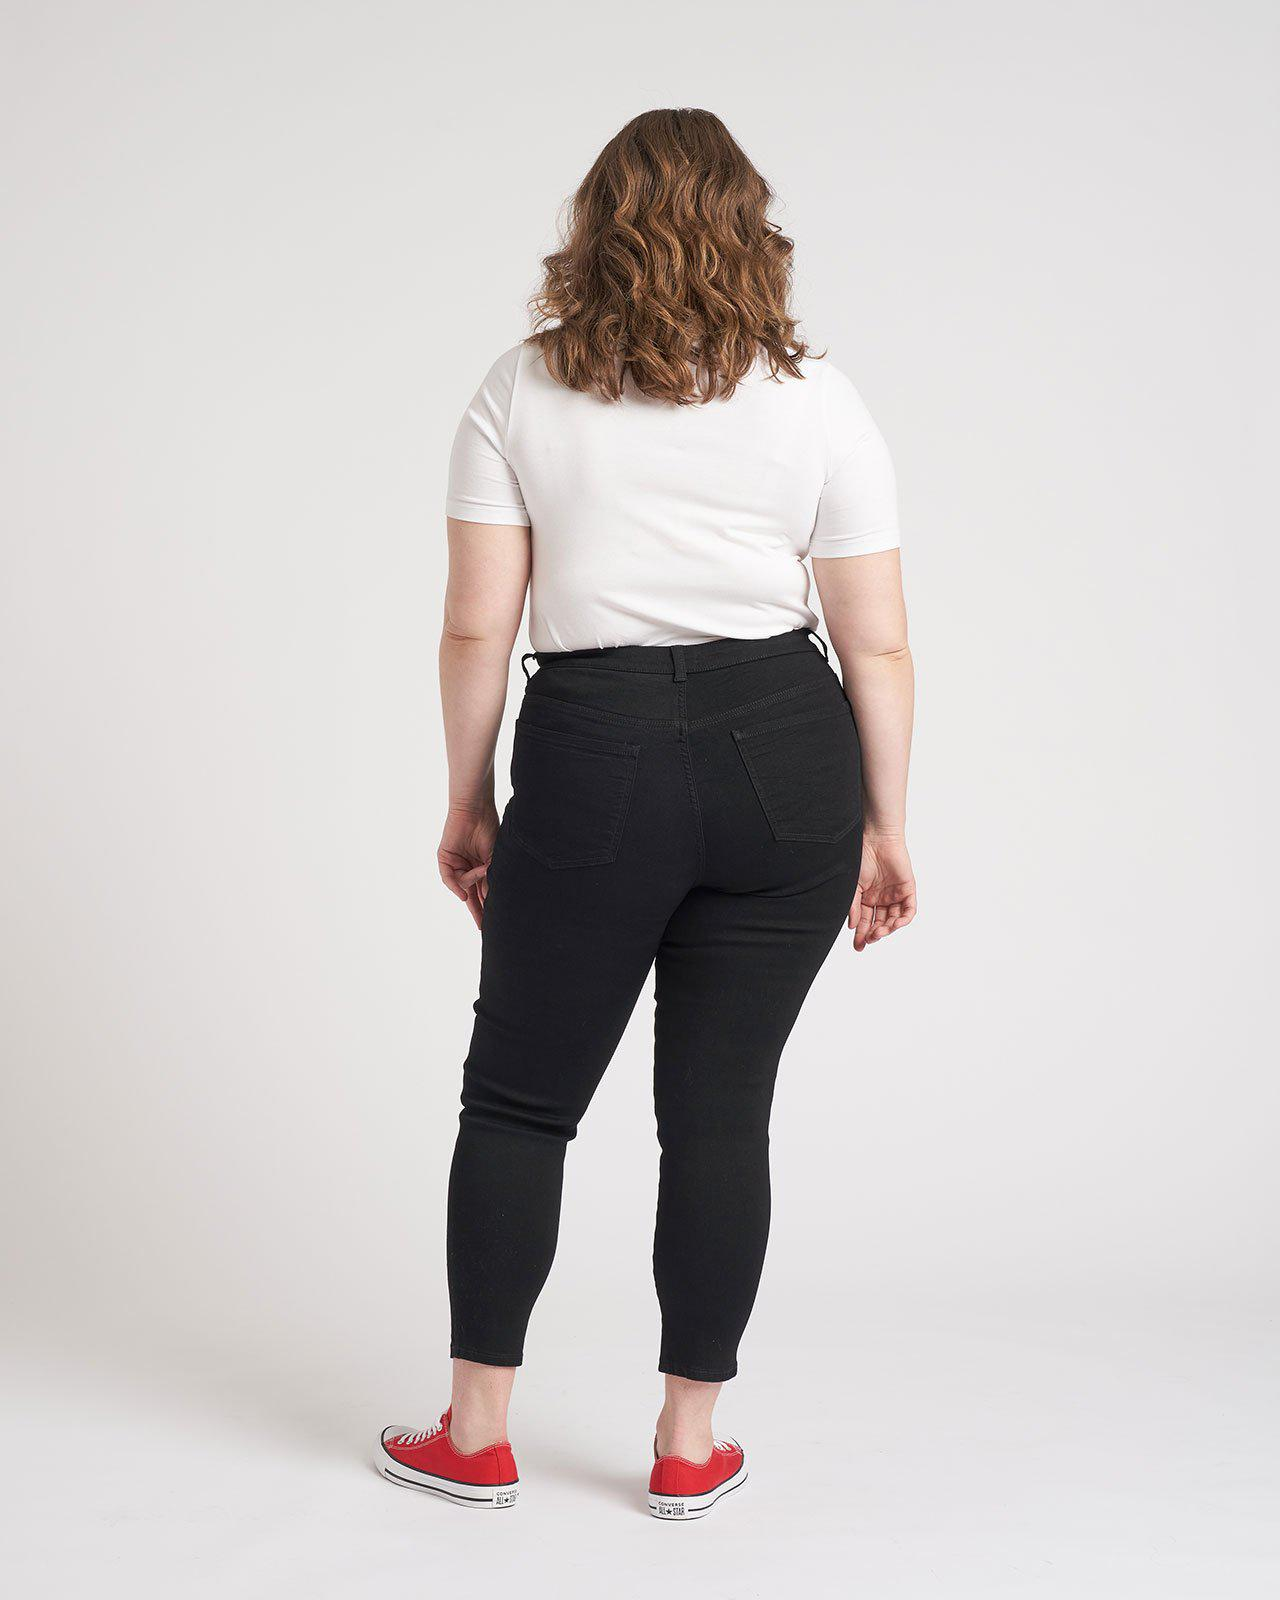 Seine Mid Rise Skinny Jeans 27 Inch 3